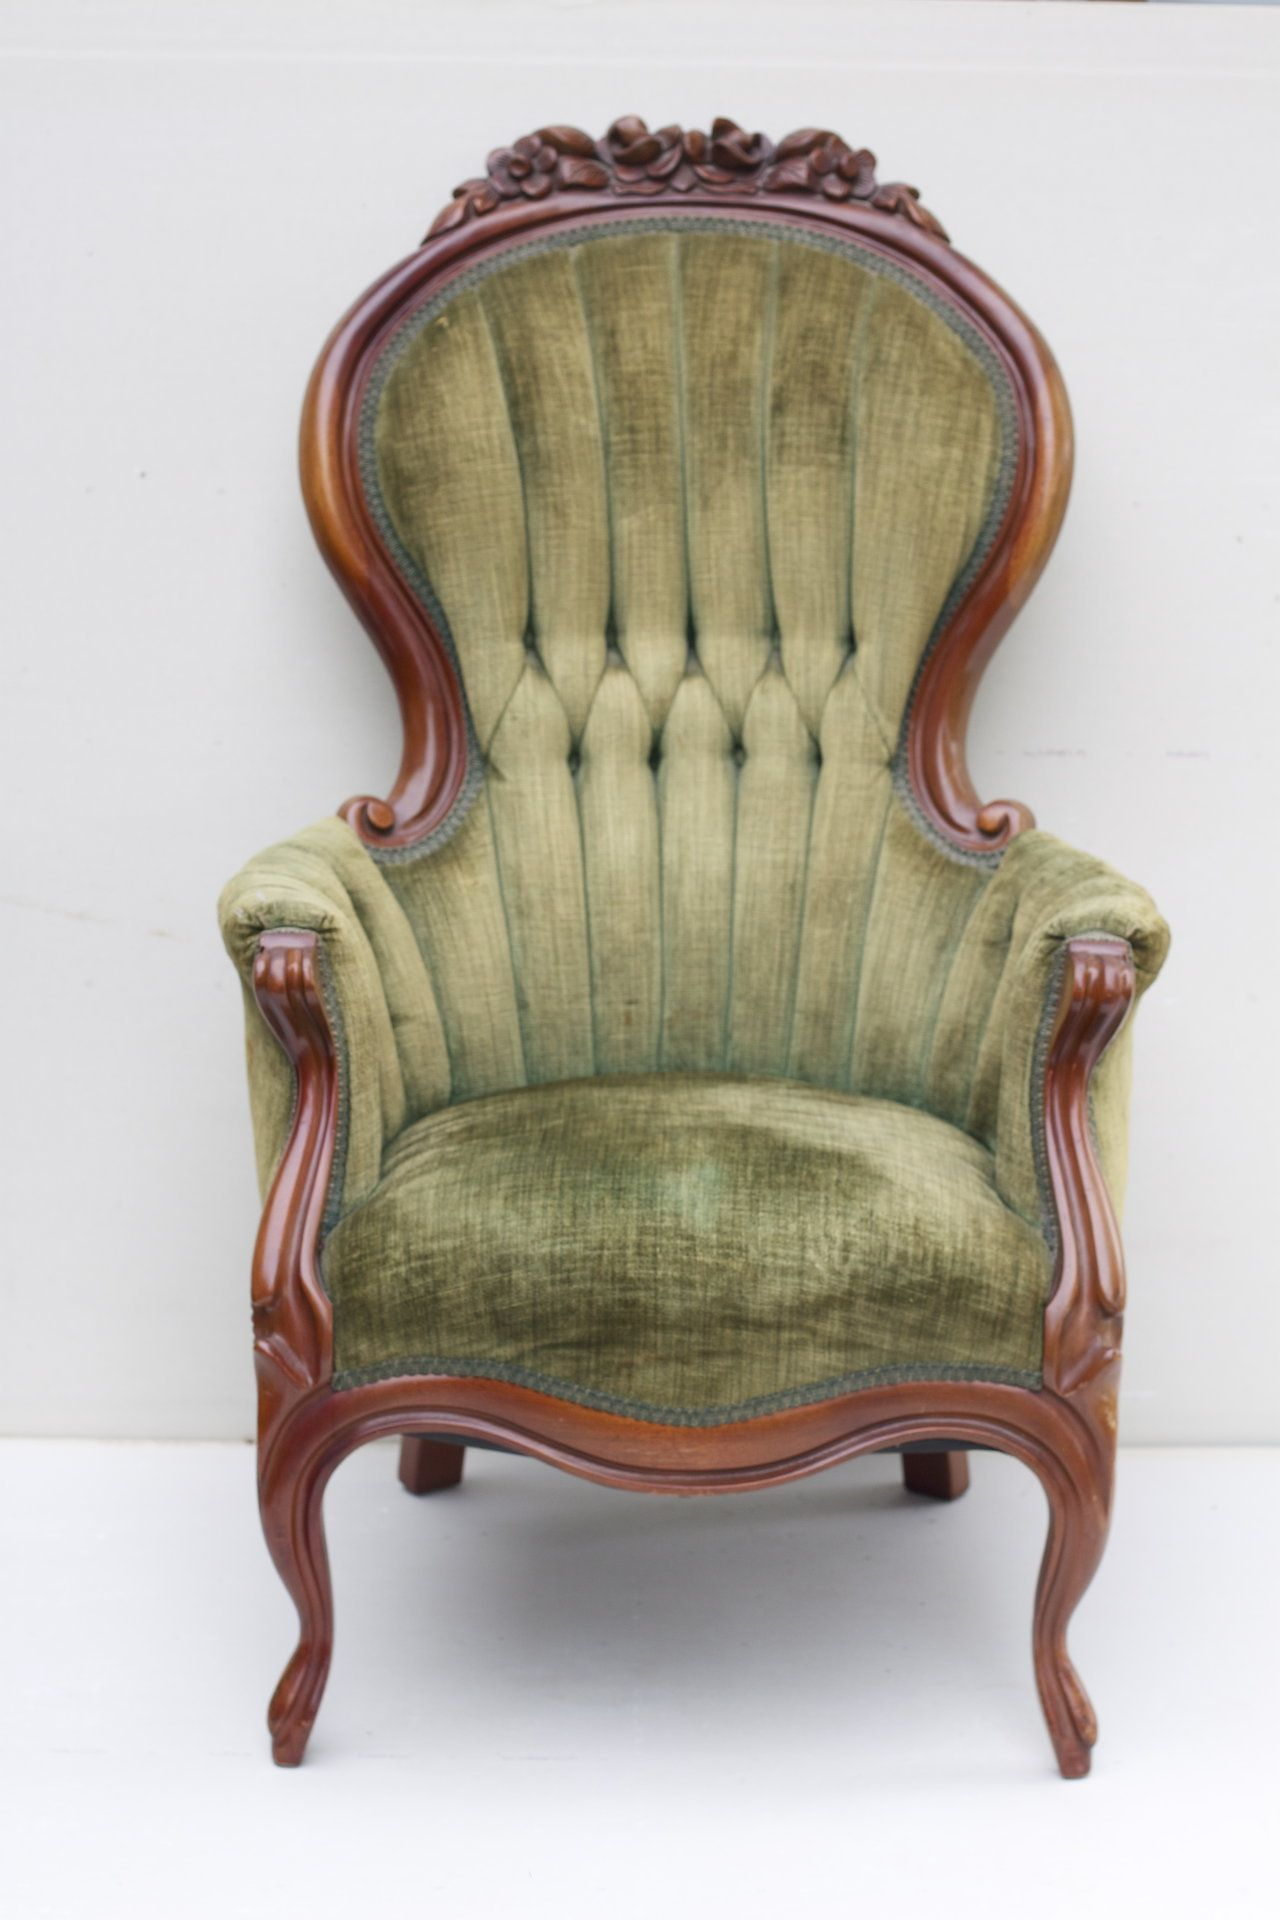 Vintage Chair with tufted sage green chenille upholstery and cherry